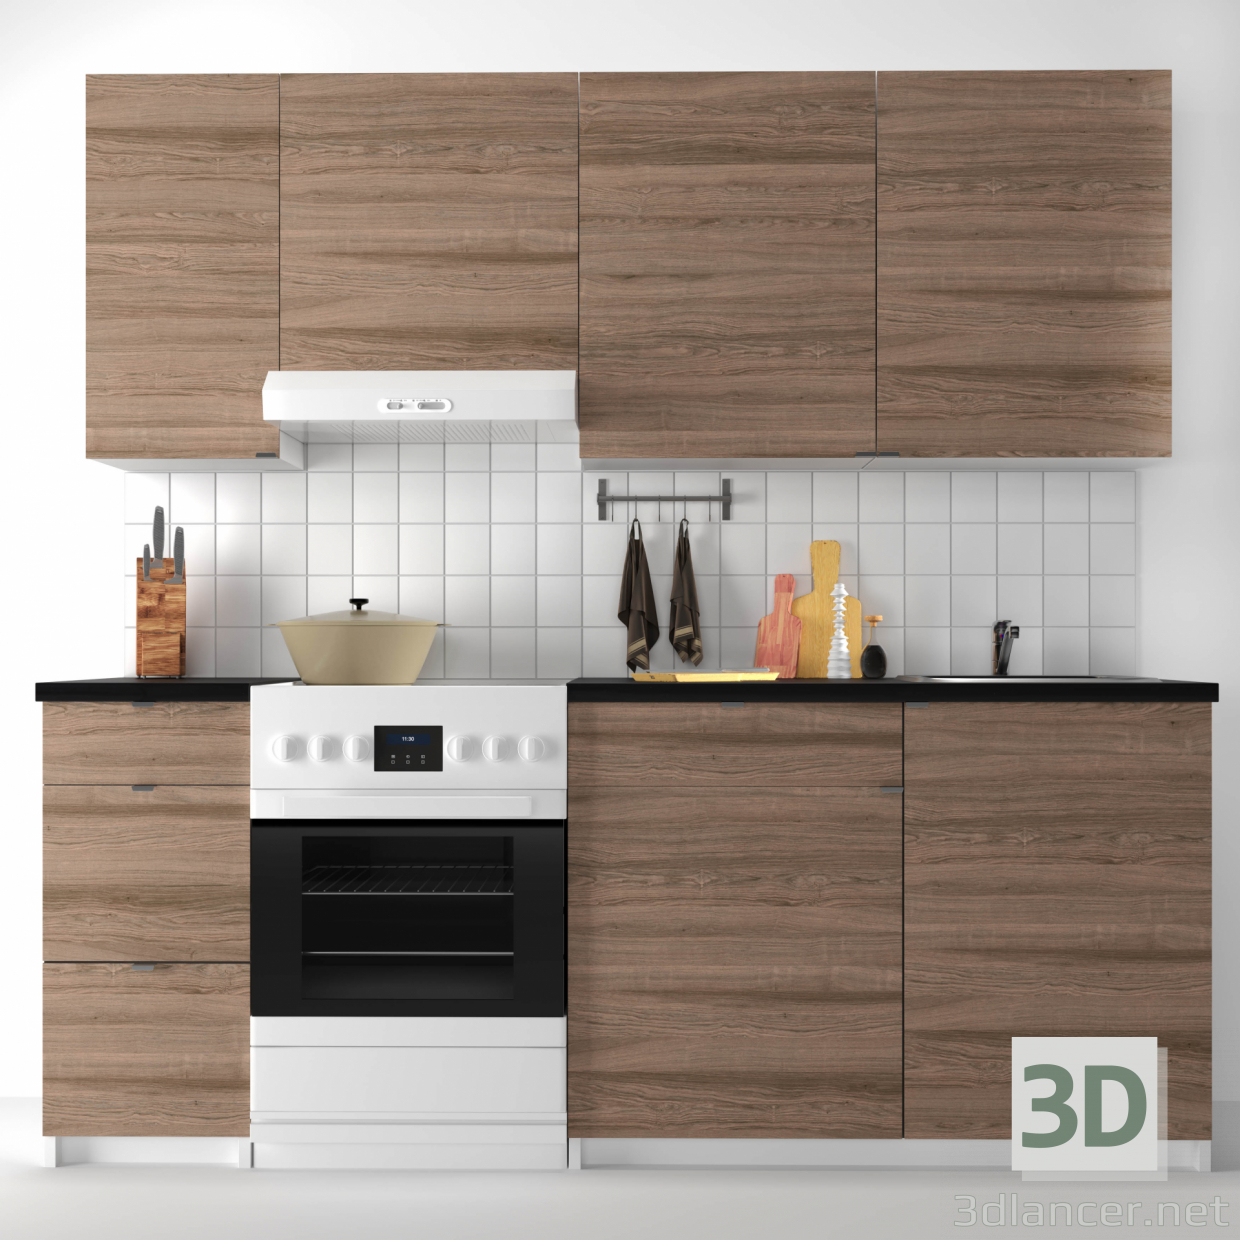 Kitchen Design 3d Model 3d Model Modular Kitchen Ikea Kohokhult Available For Download In